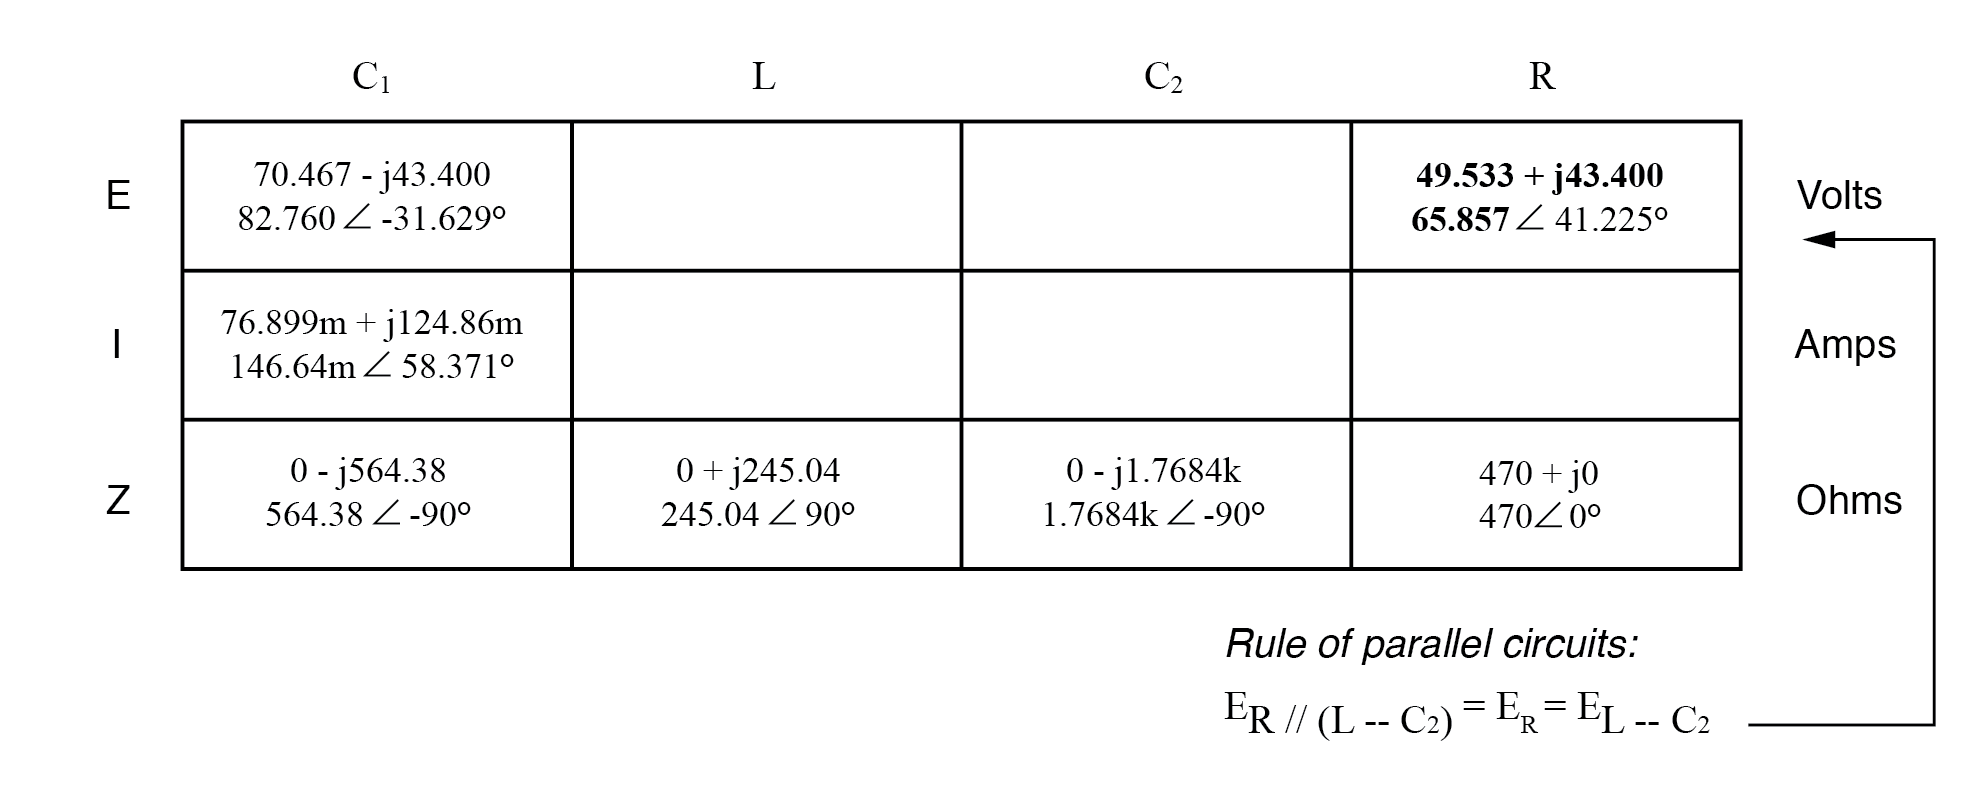 initial values in table 9